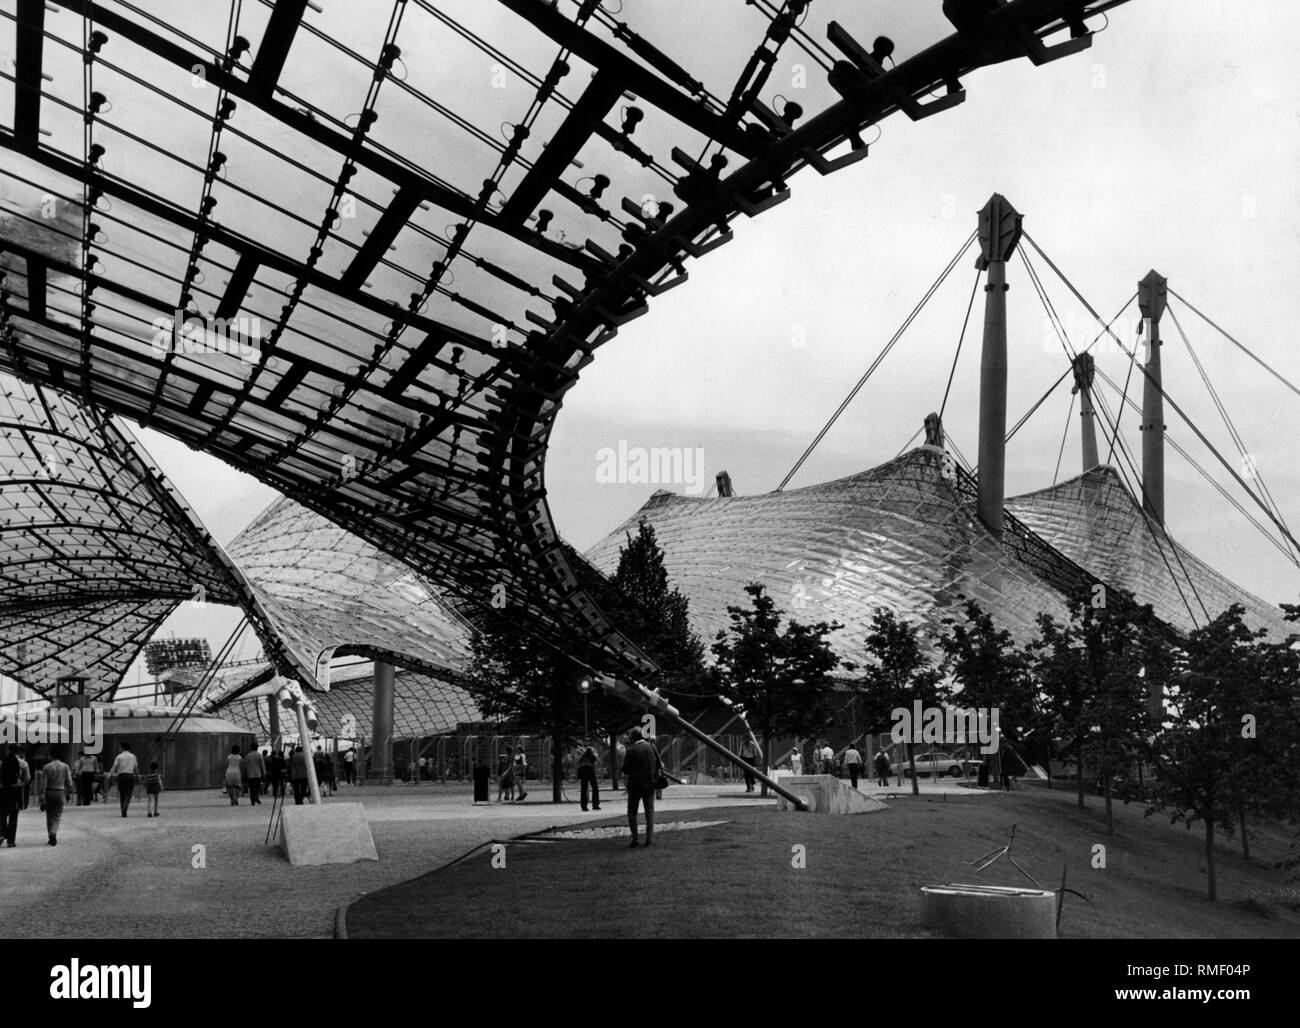 View from the forecourt onto the Olympic Stadium (Olympiastadion) in Munich with its tent roof construction. - Stock Image